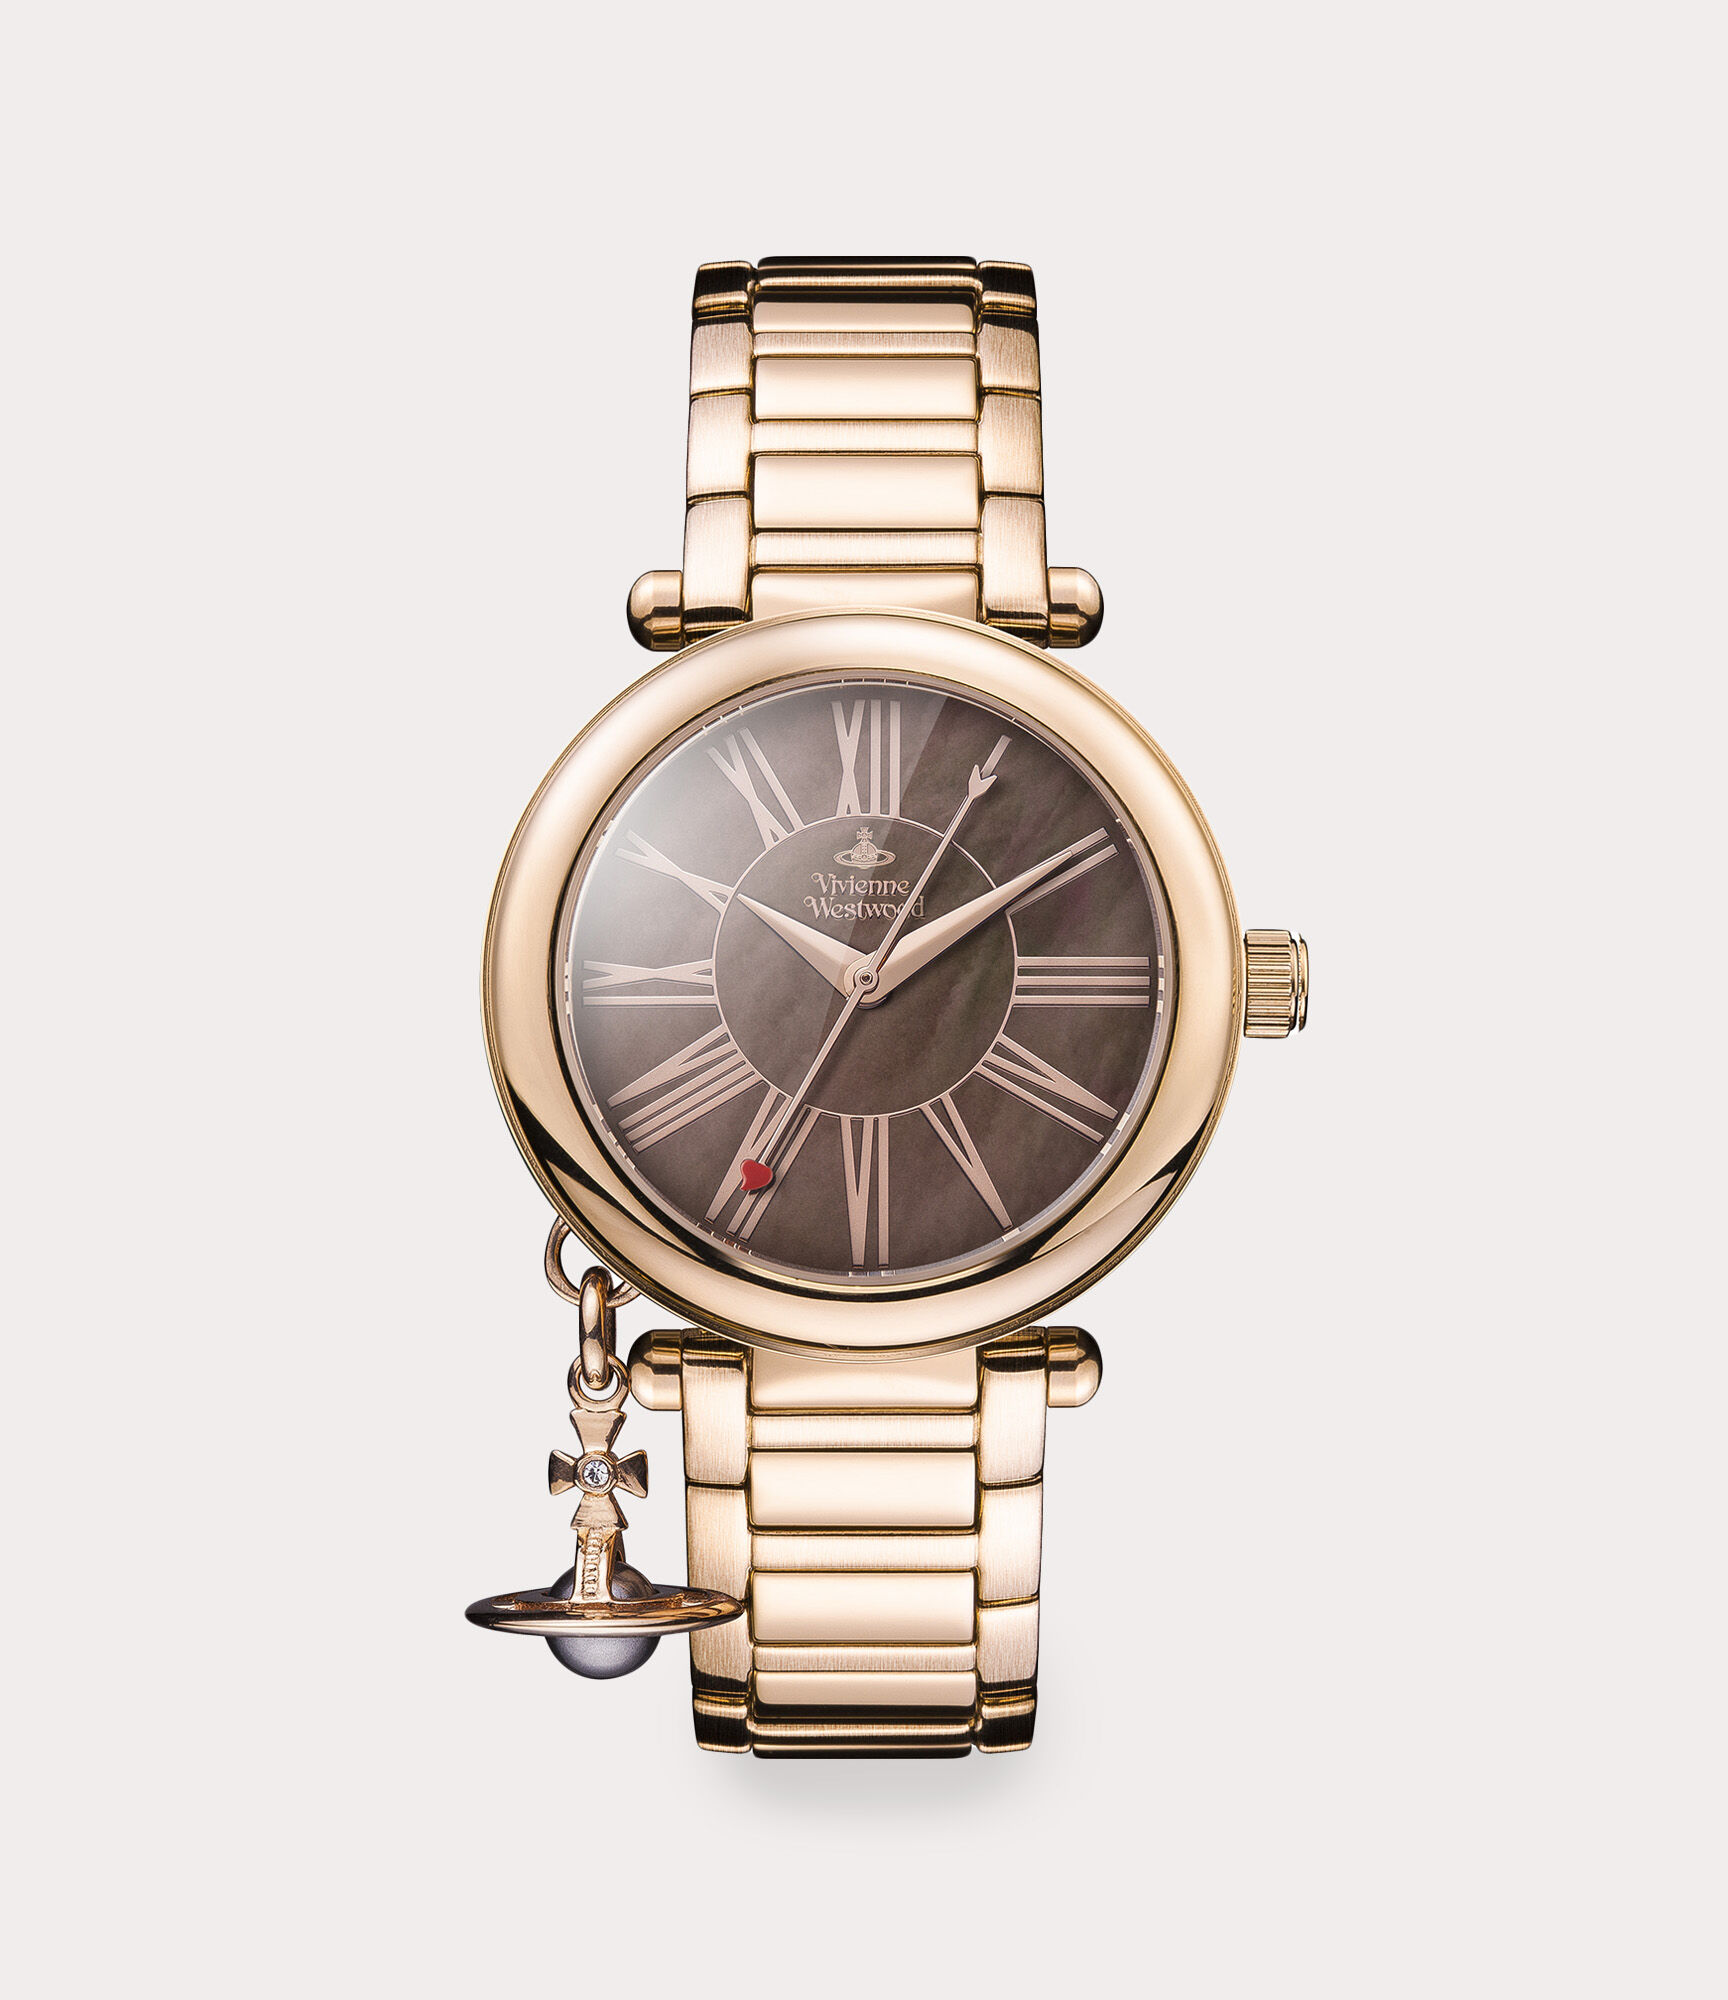 Vivienne Westwood Schmuck Uhren Damen Vivienne Westwood Mother Of Orb Watch Rose Gold